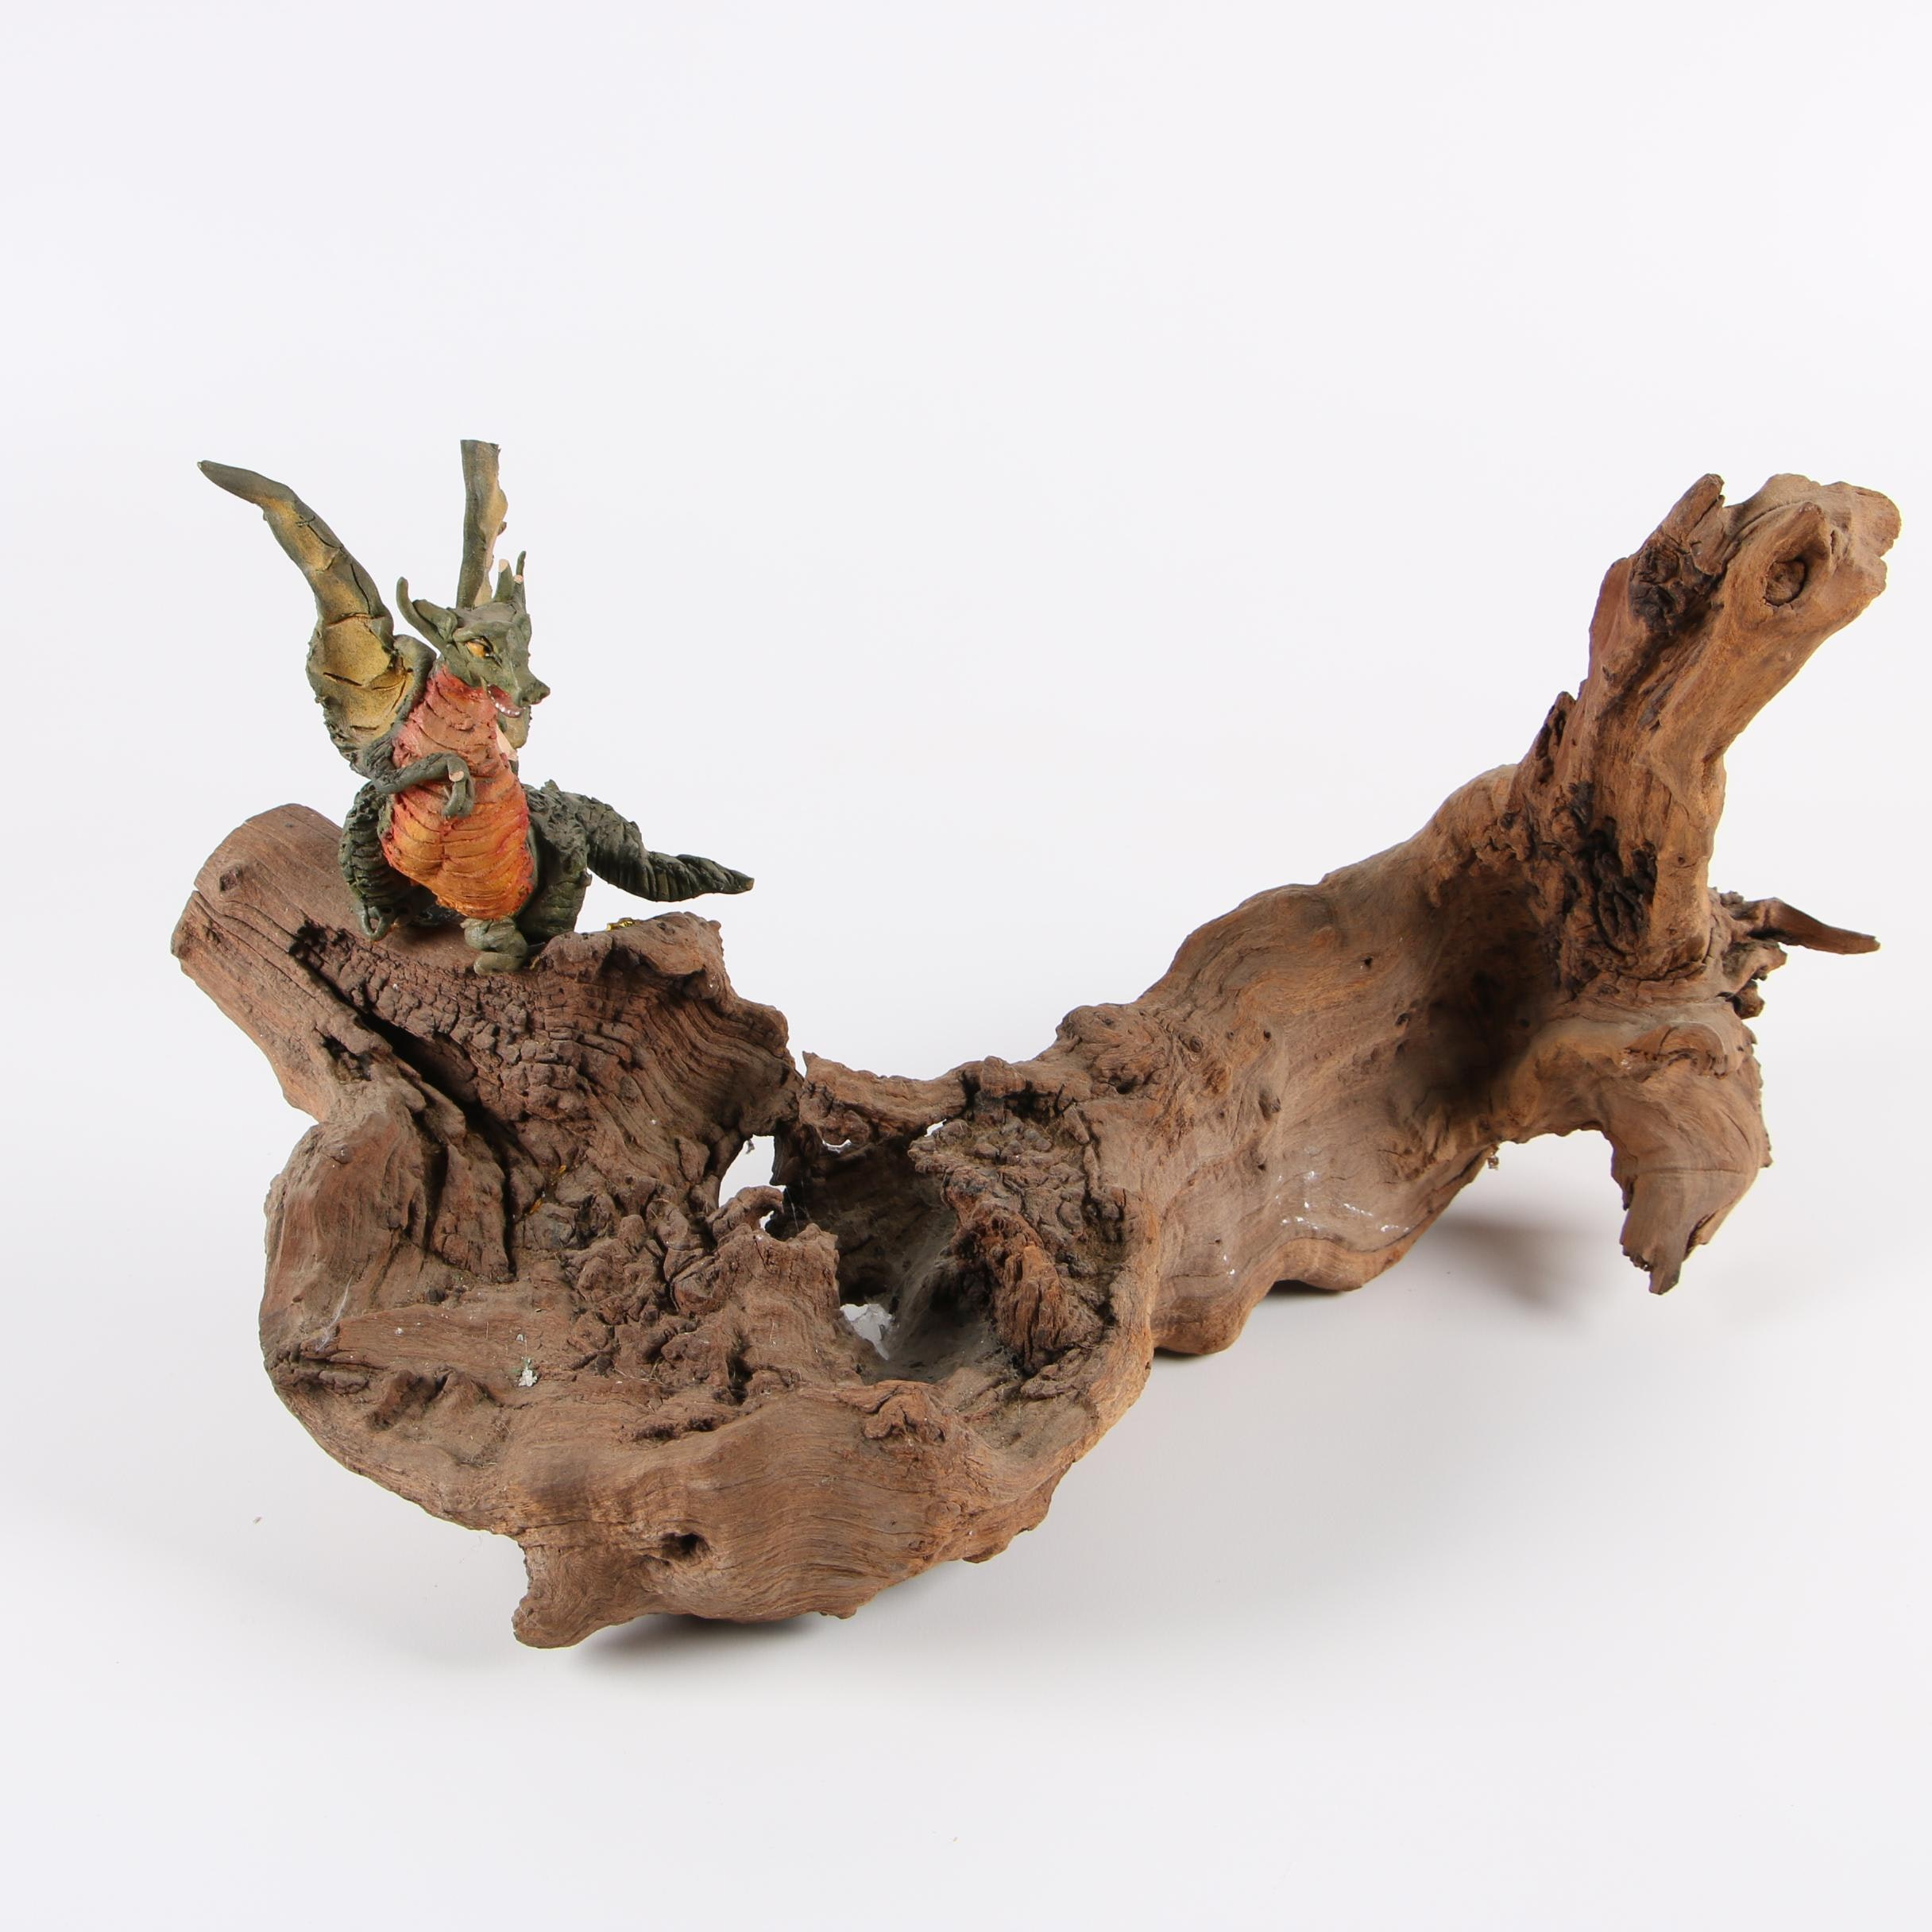 Clay Dragon Figurine on Natural Driftwood Base Sculpture